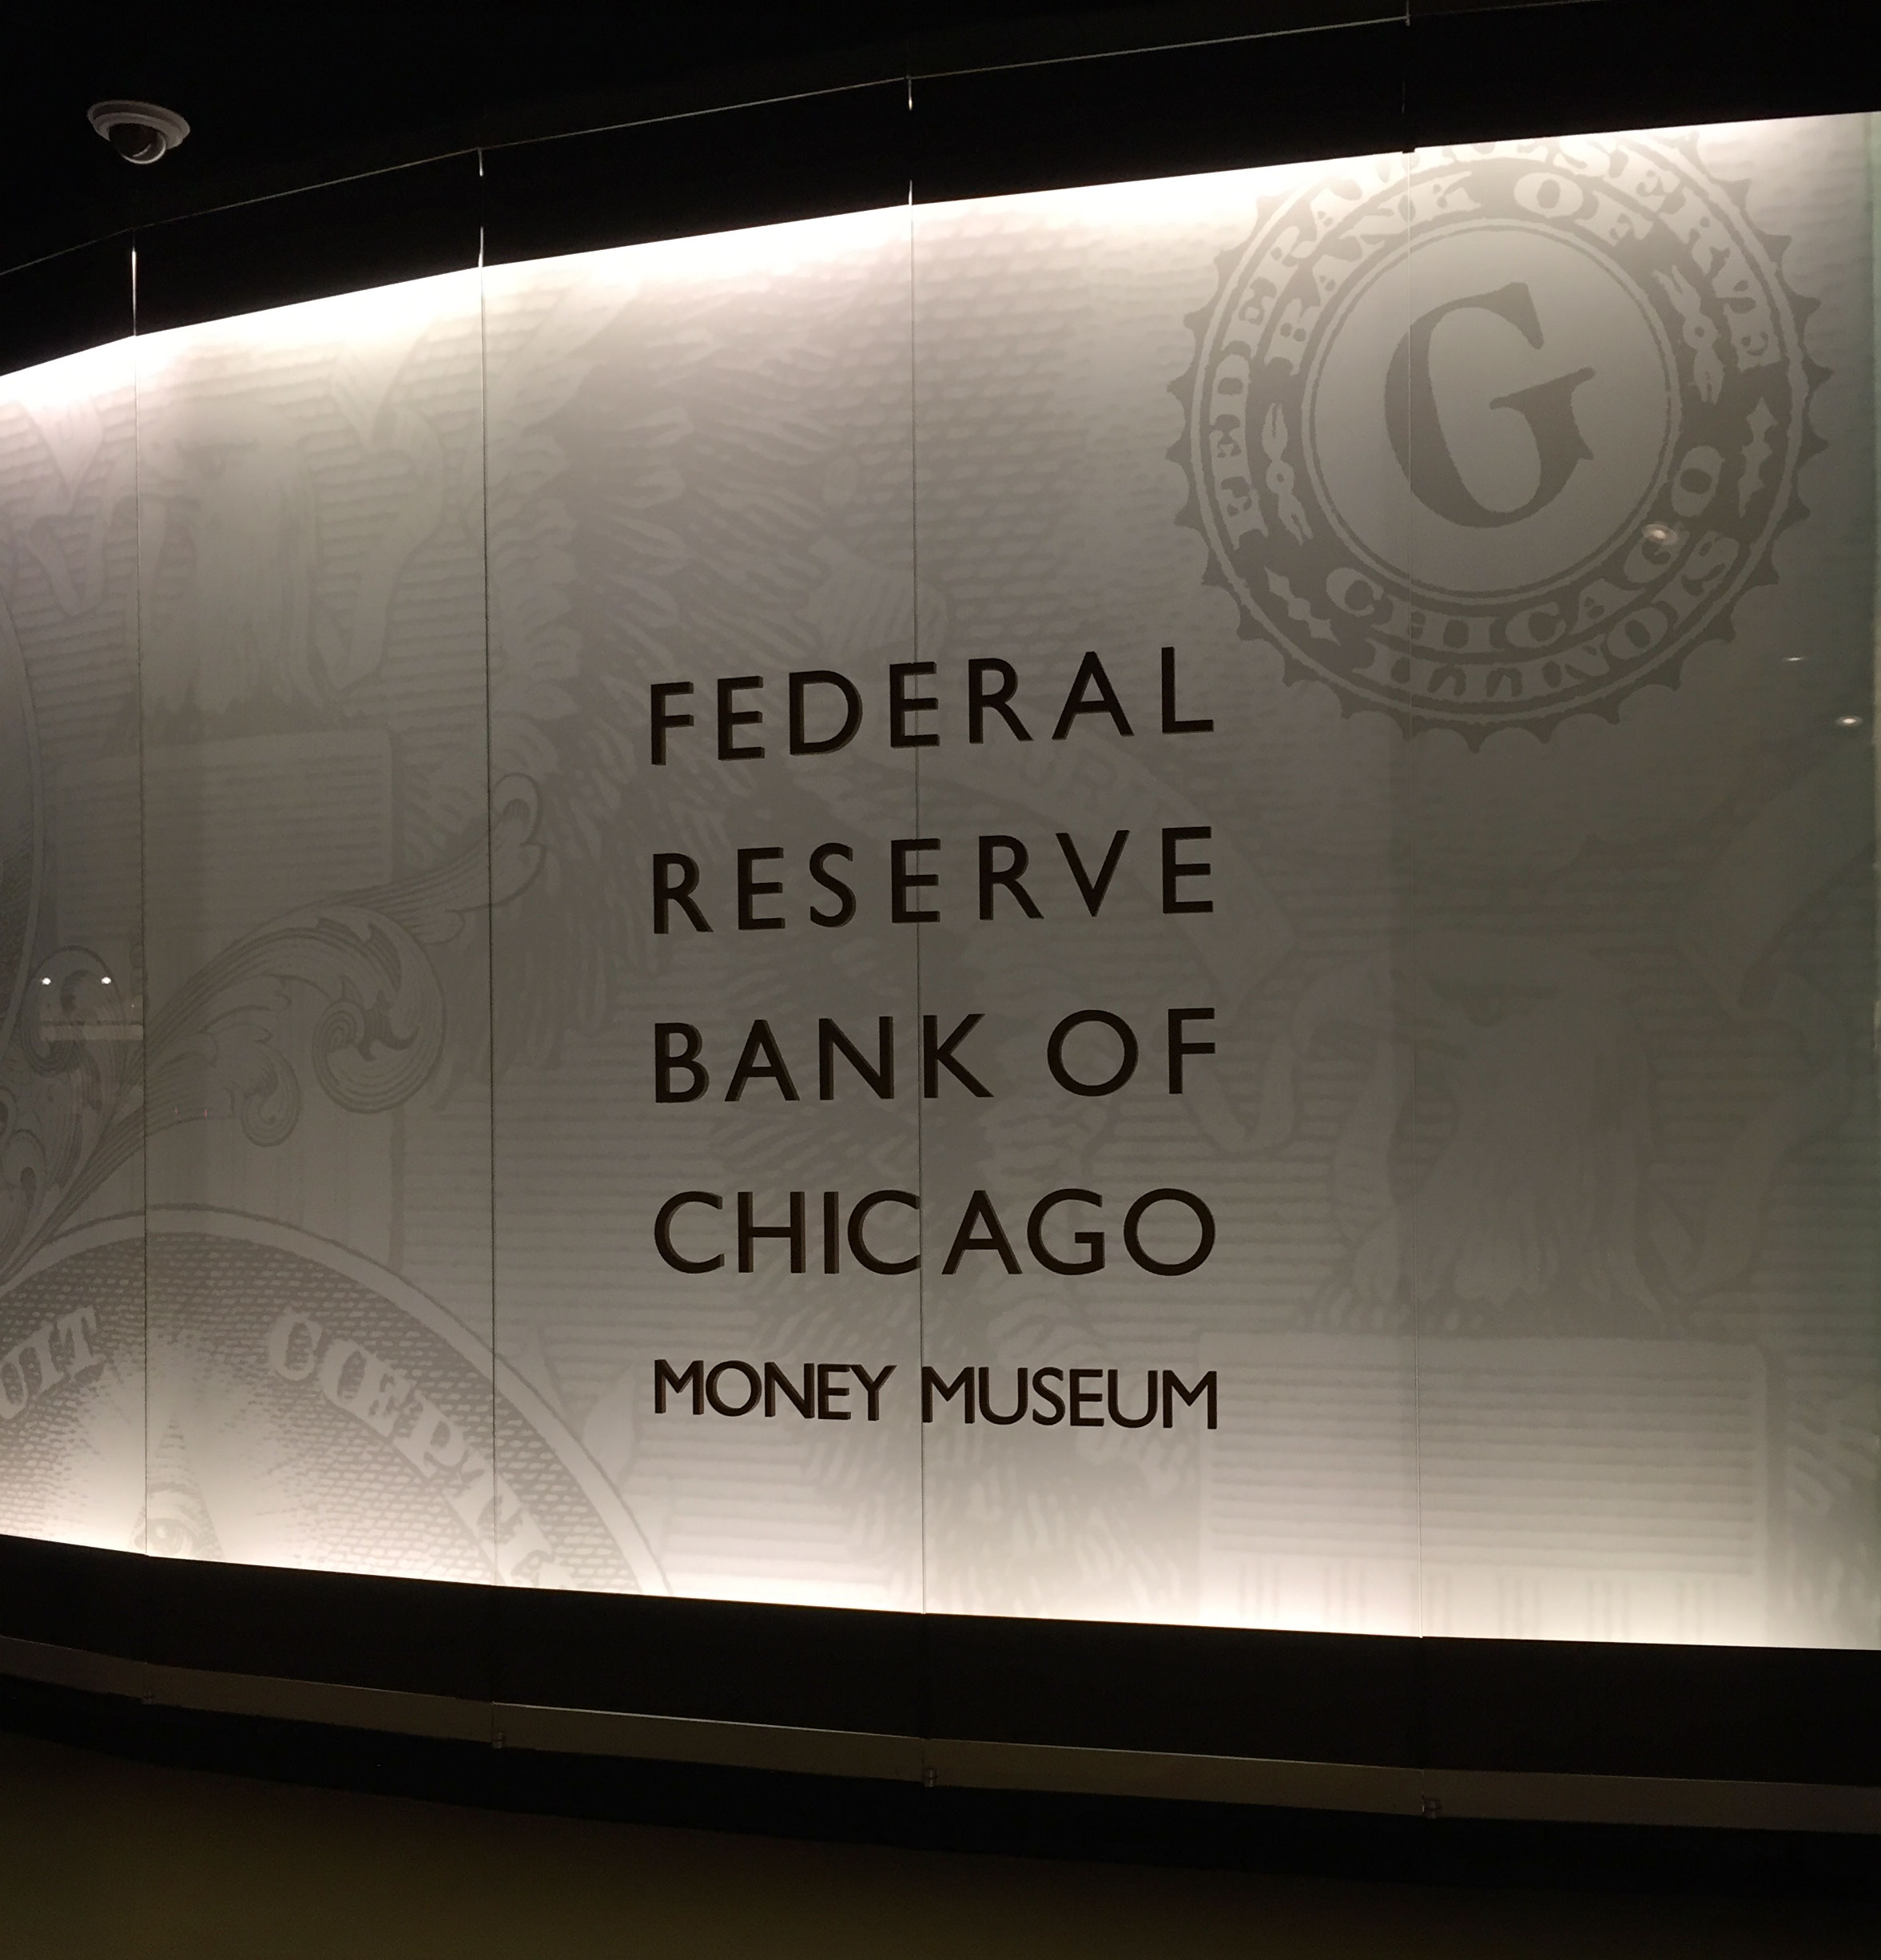 Federal-Reserve-Bank-of-Chicago---money-museum-1